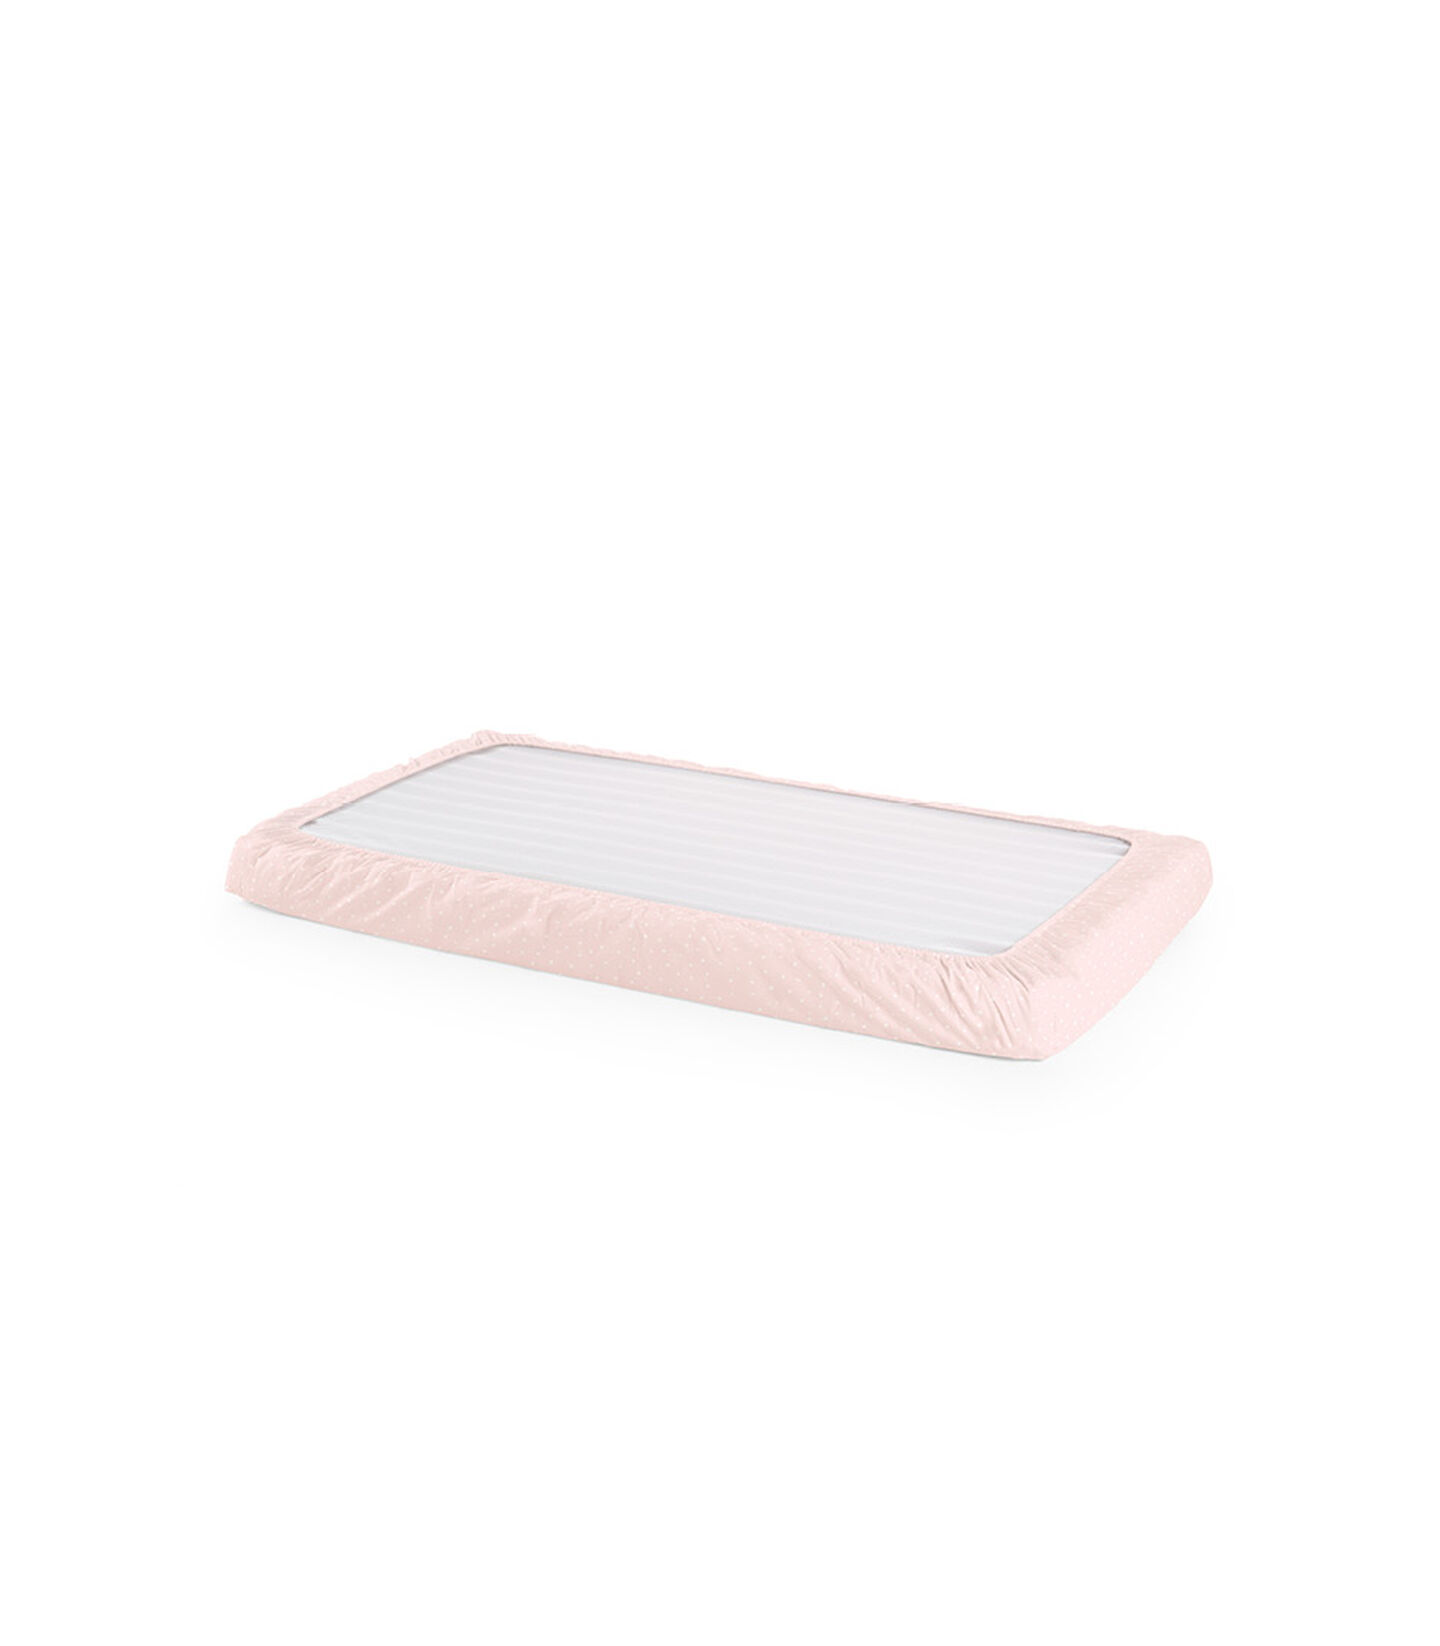 Stokke® Home™ Bed Fit Sheet Pink Bee, Rose abeille, mainview view 2